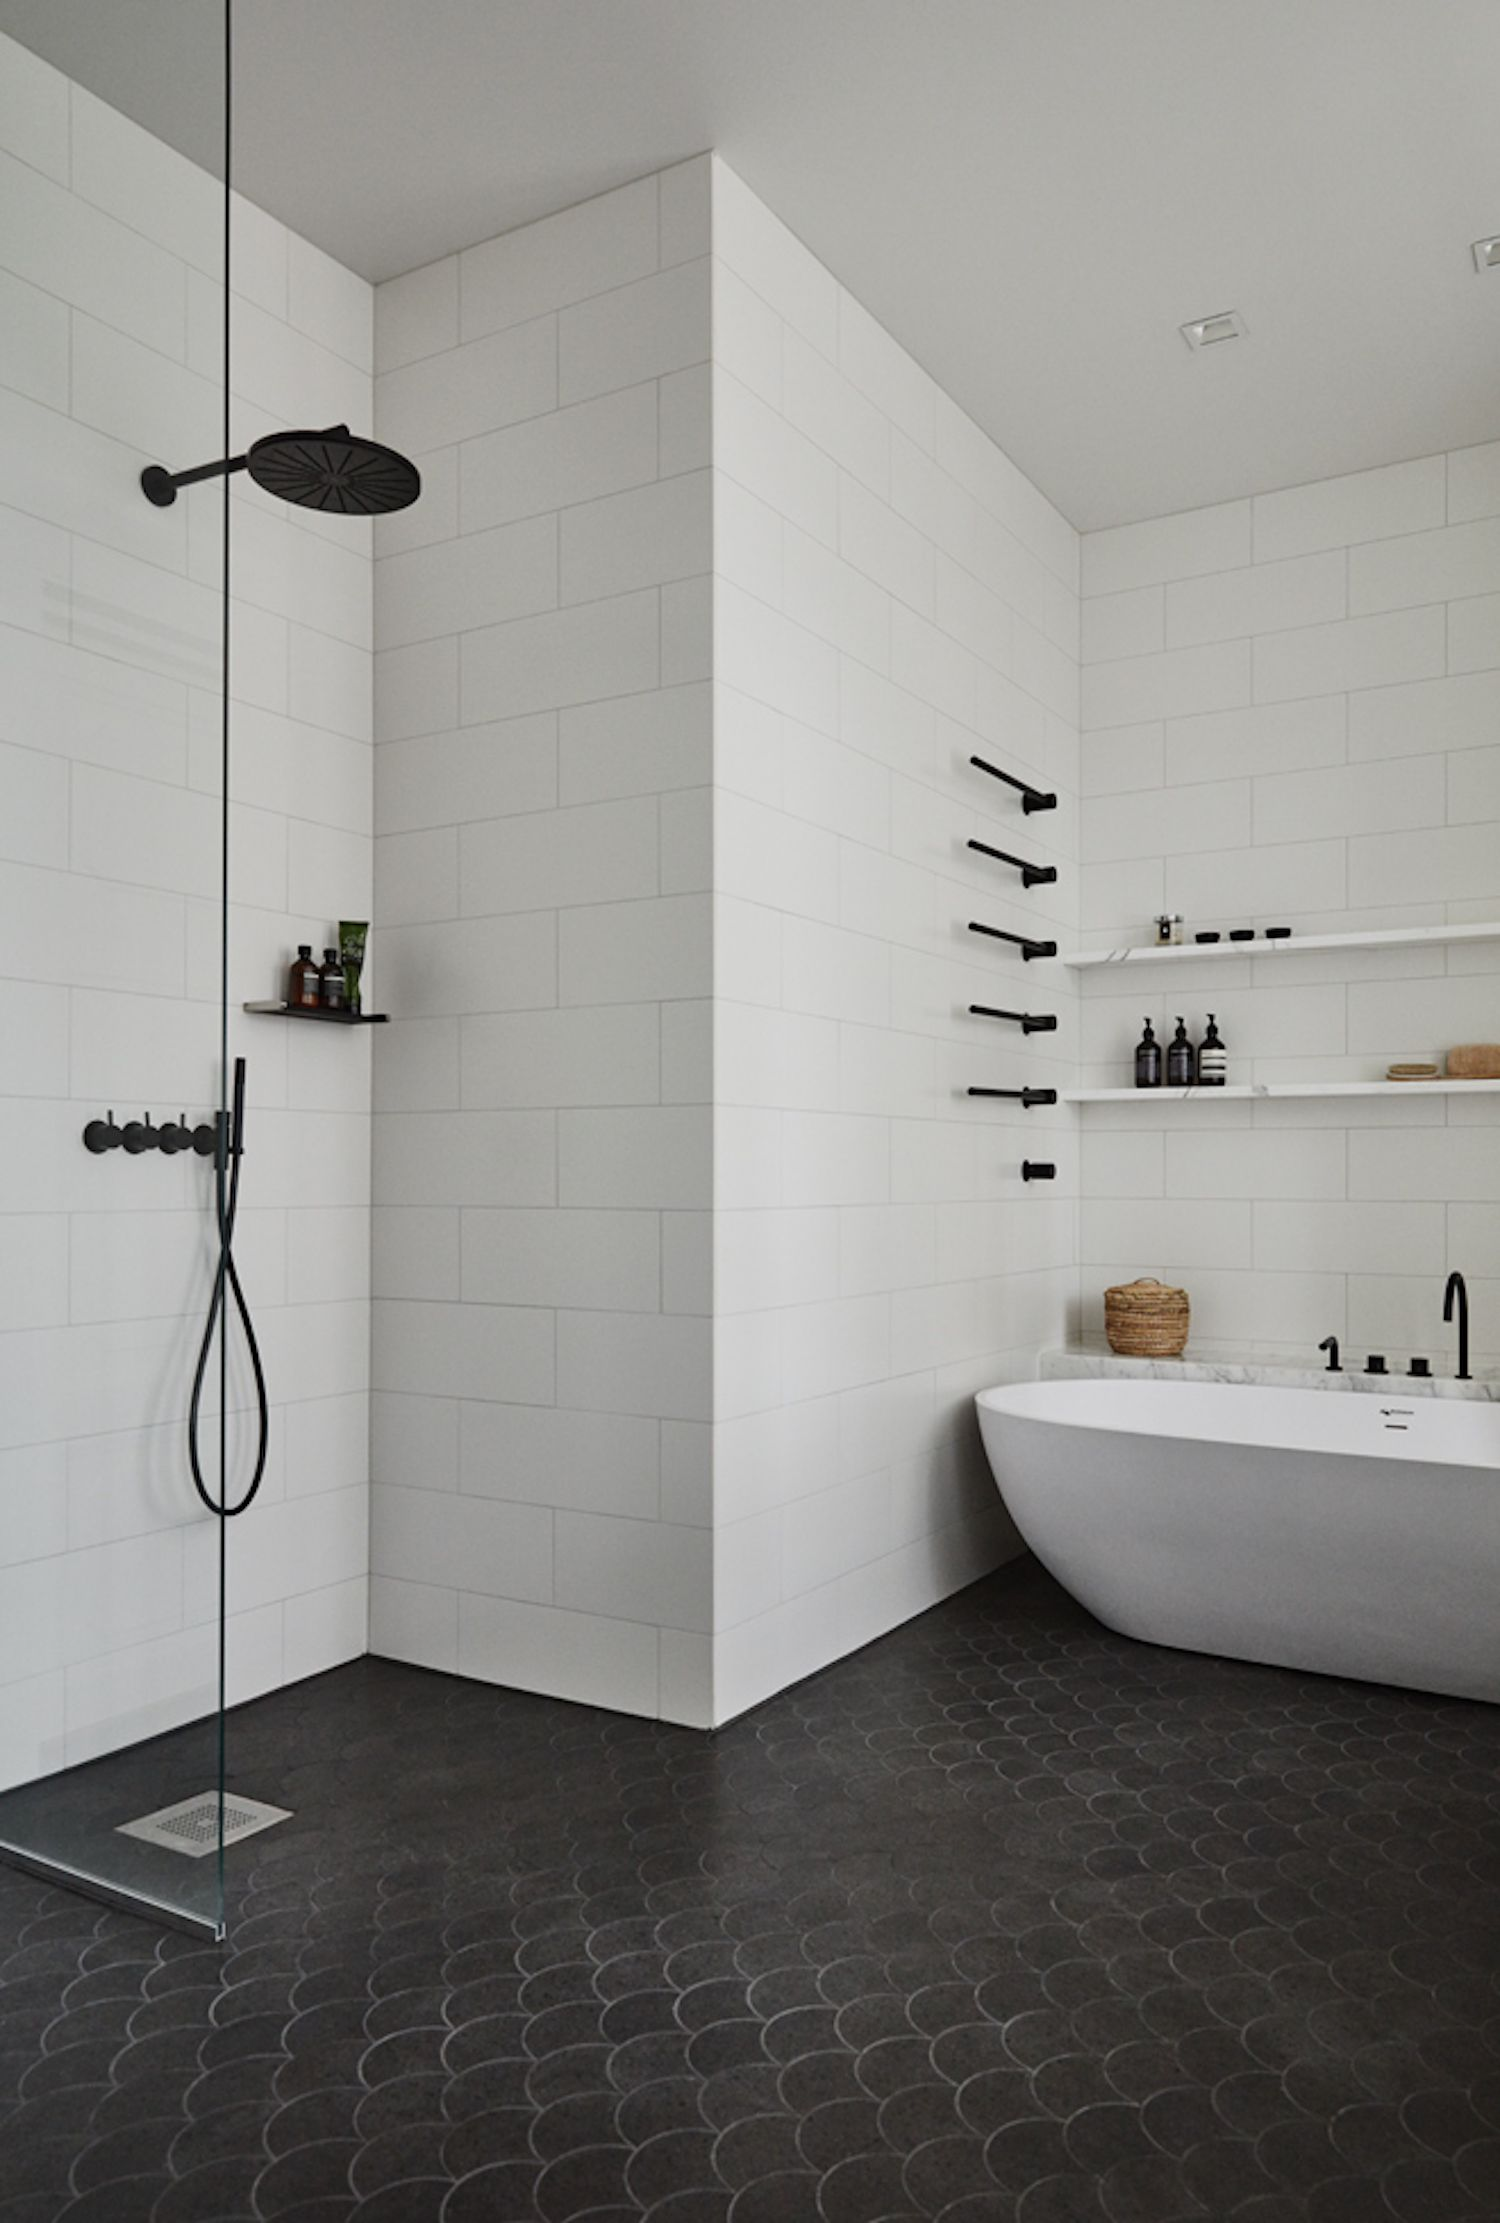 Lahti home joanna laajisto est living spaces bathroom striking black fixtures and fish scale tile in the bathroom of a home in lahti finland with interior design by joanna laajisto dailygadgetfo Images